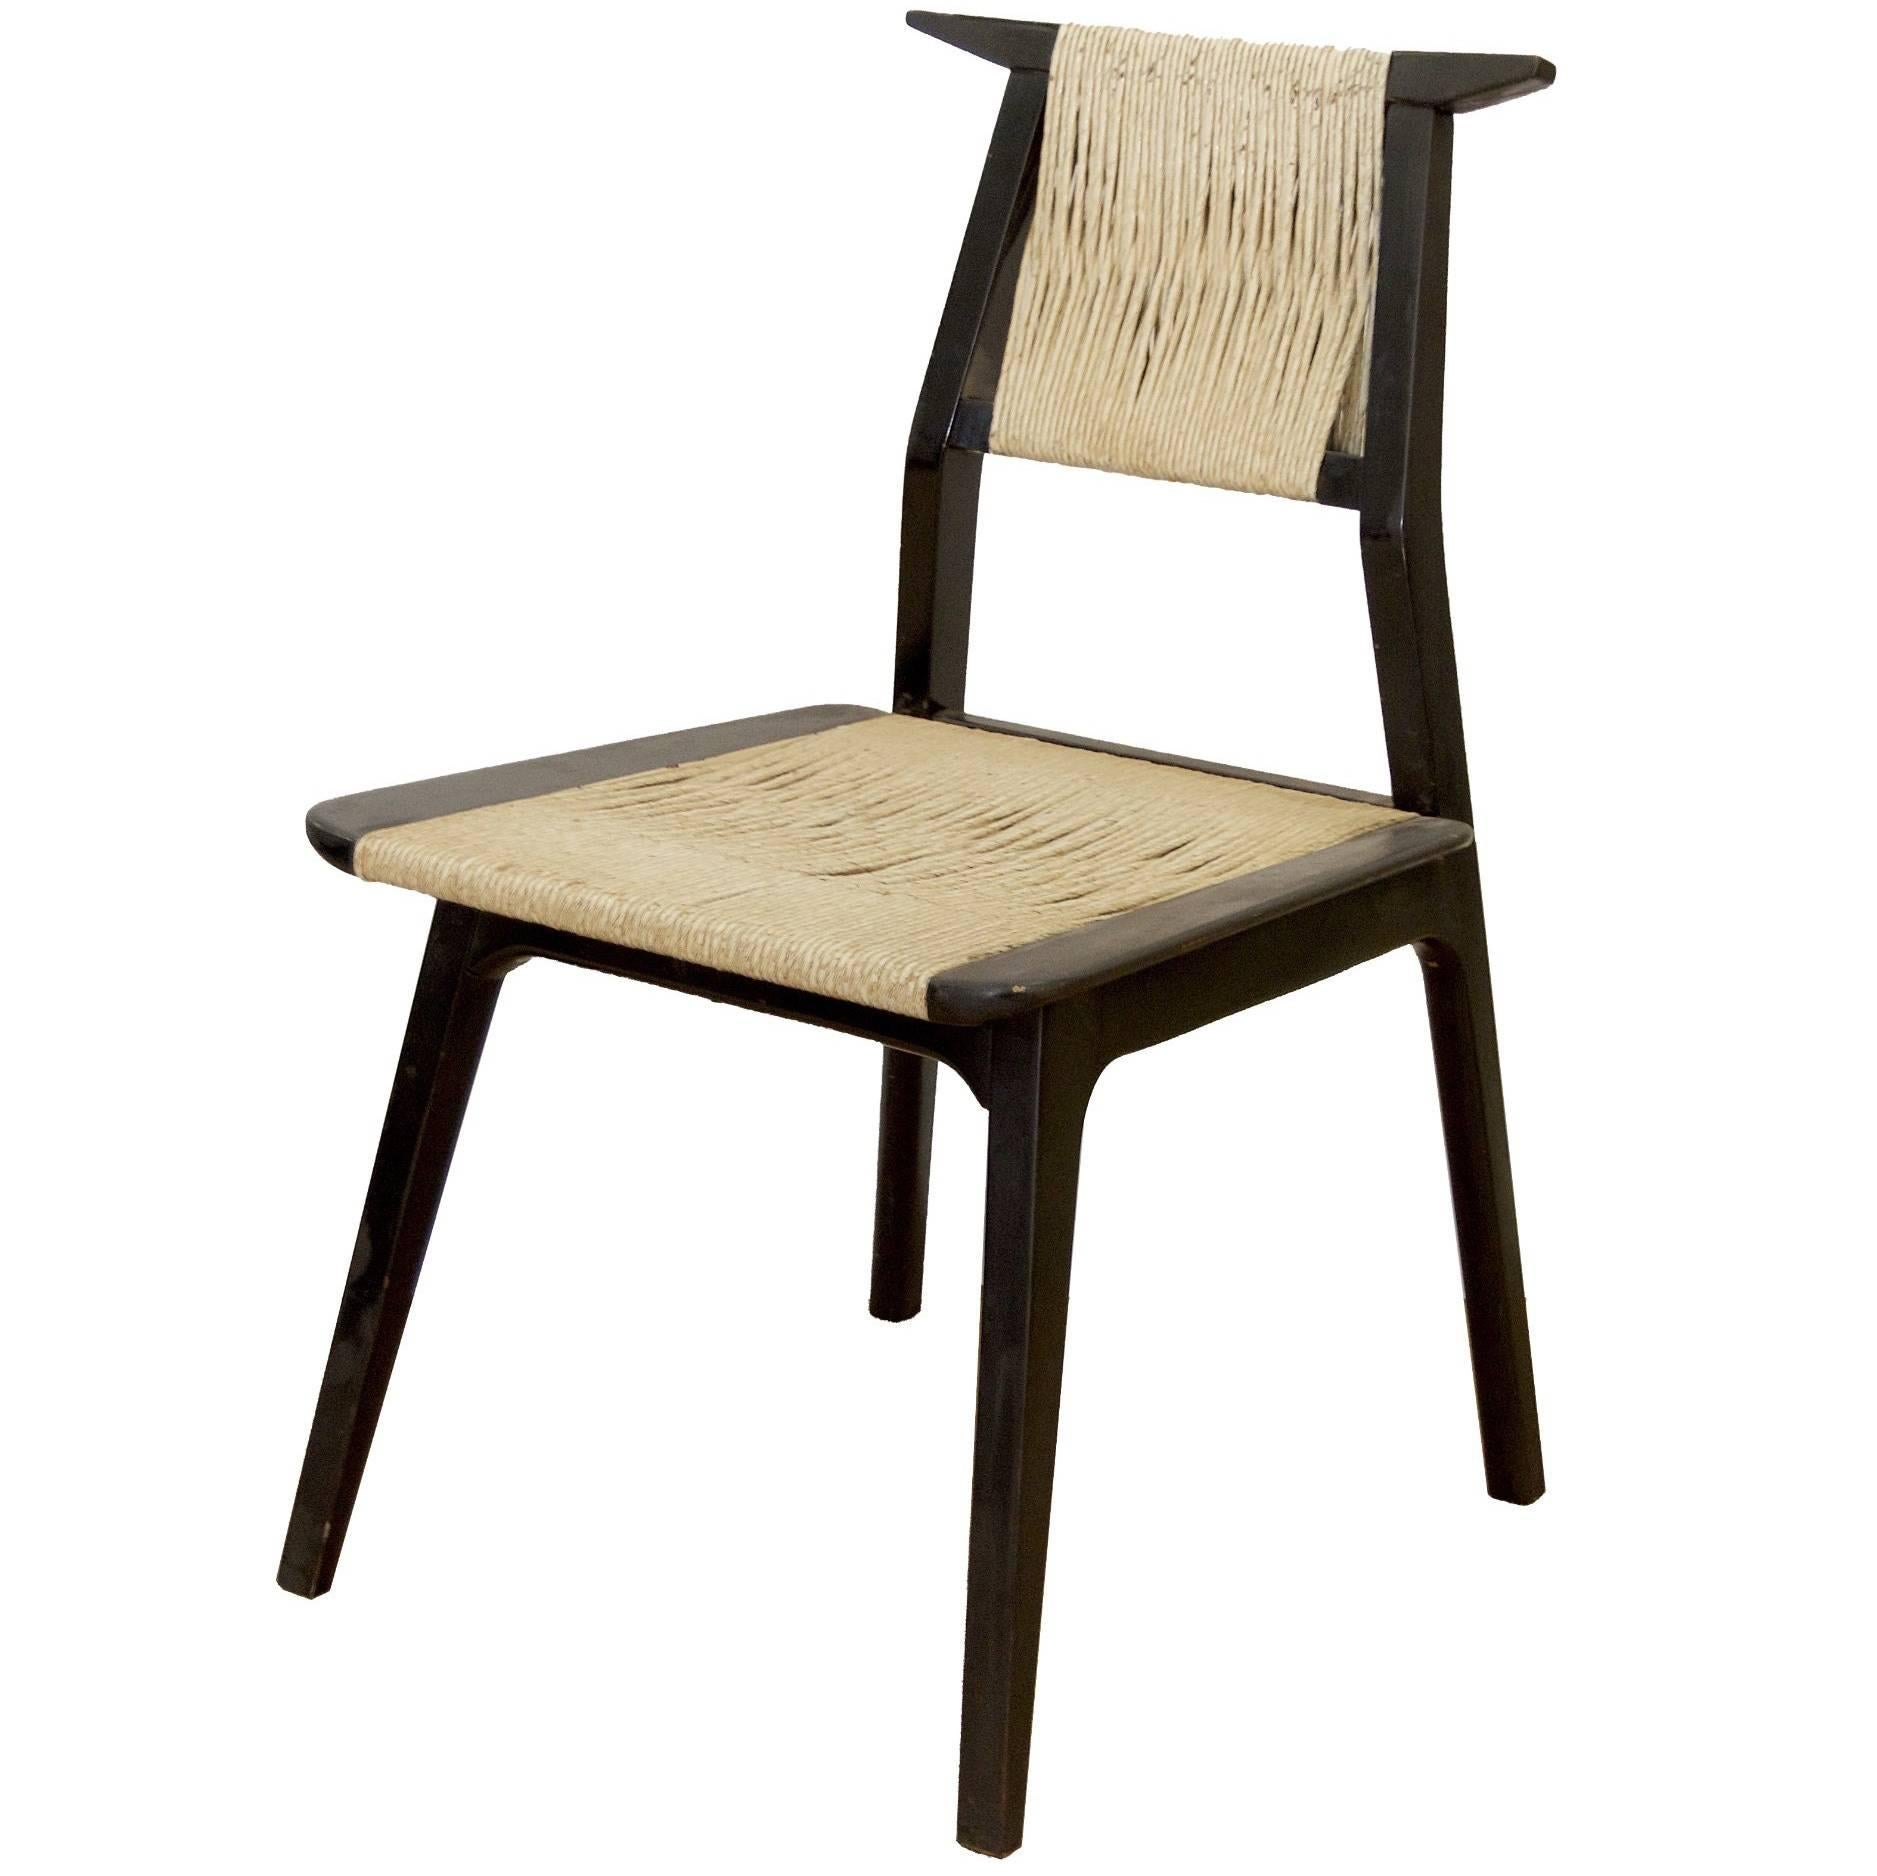 Unusual Danish Cord Wrap Chair For Sale